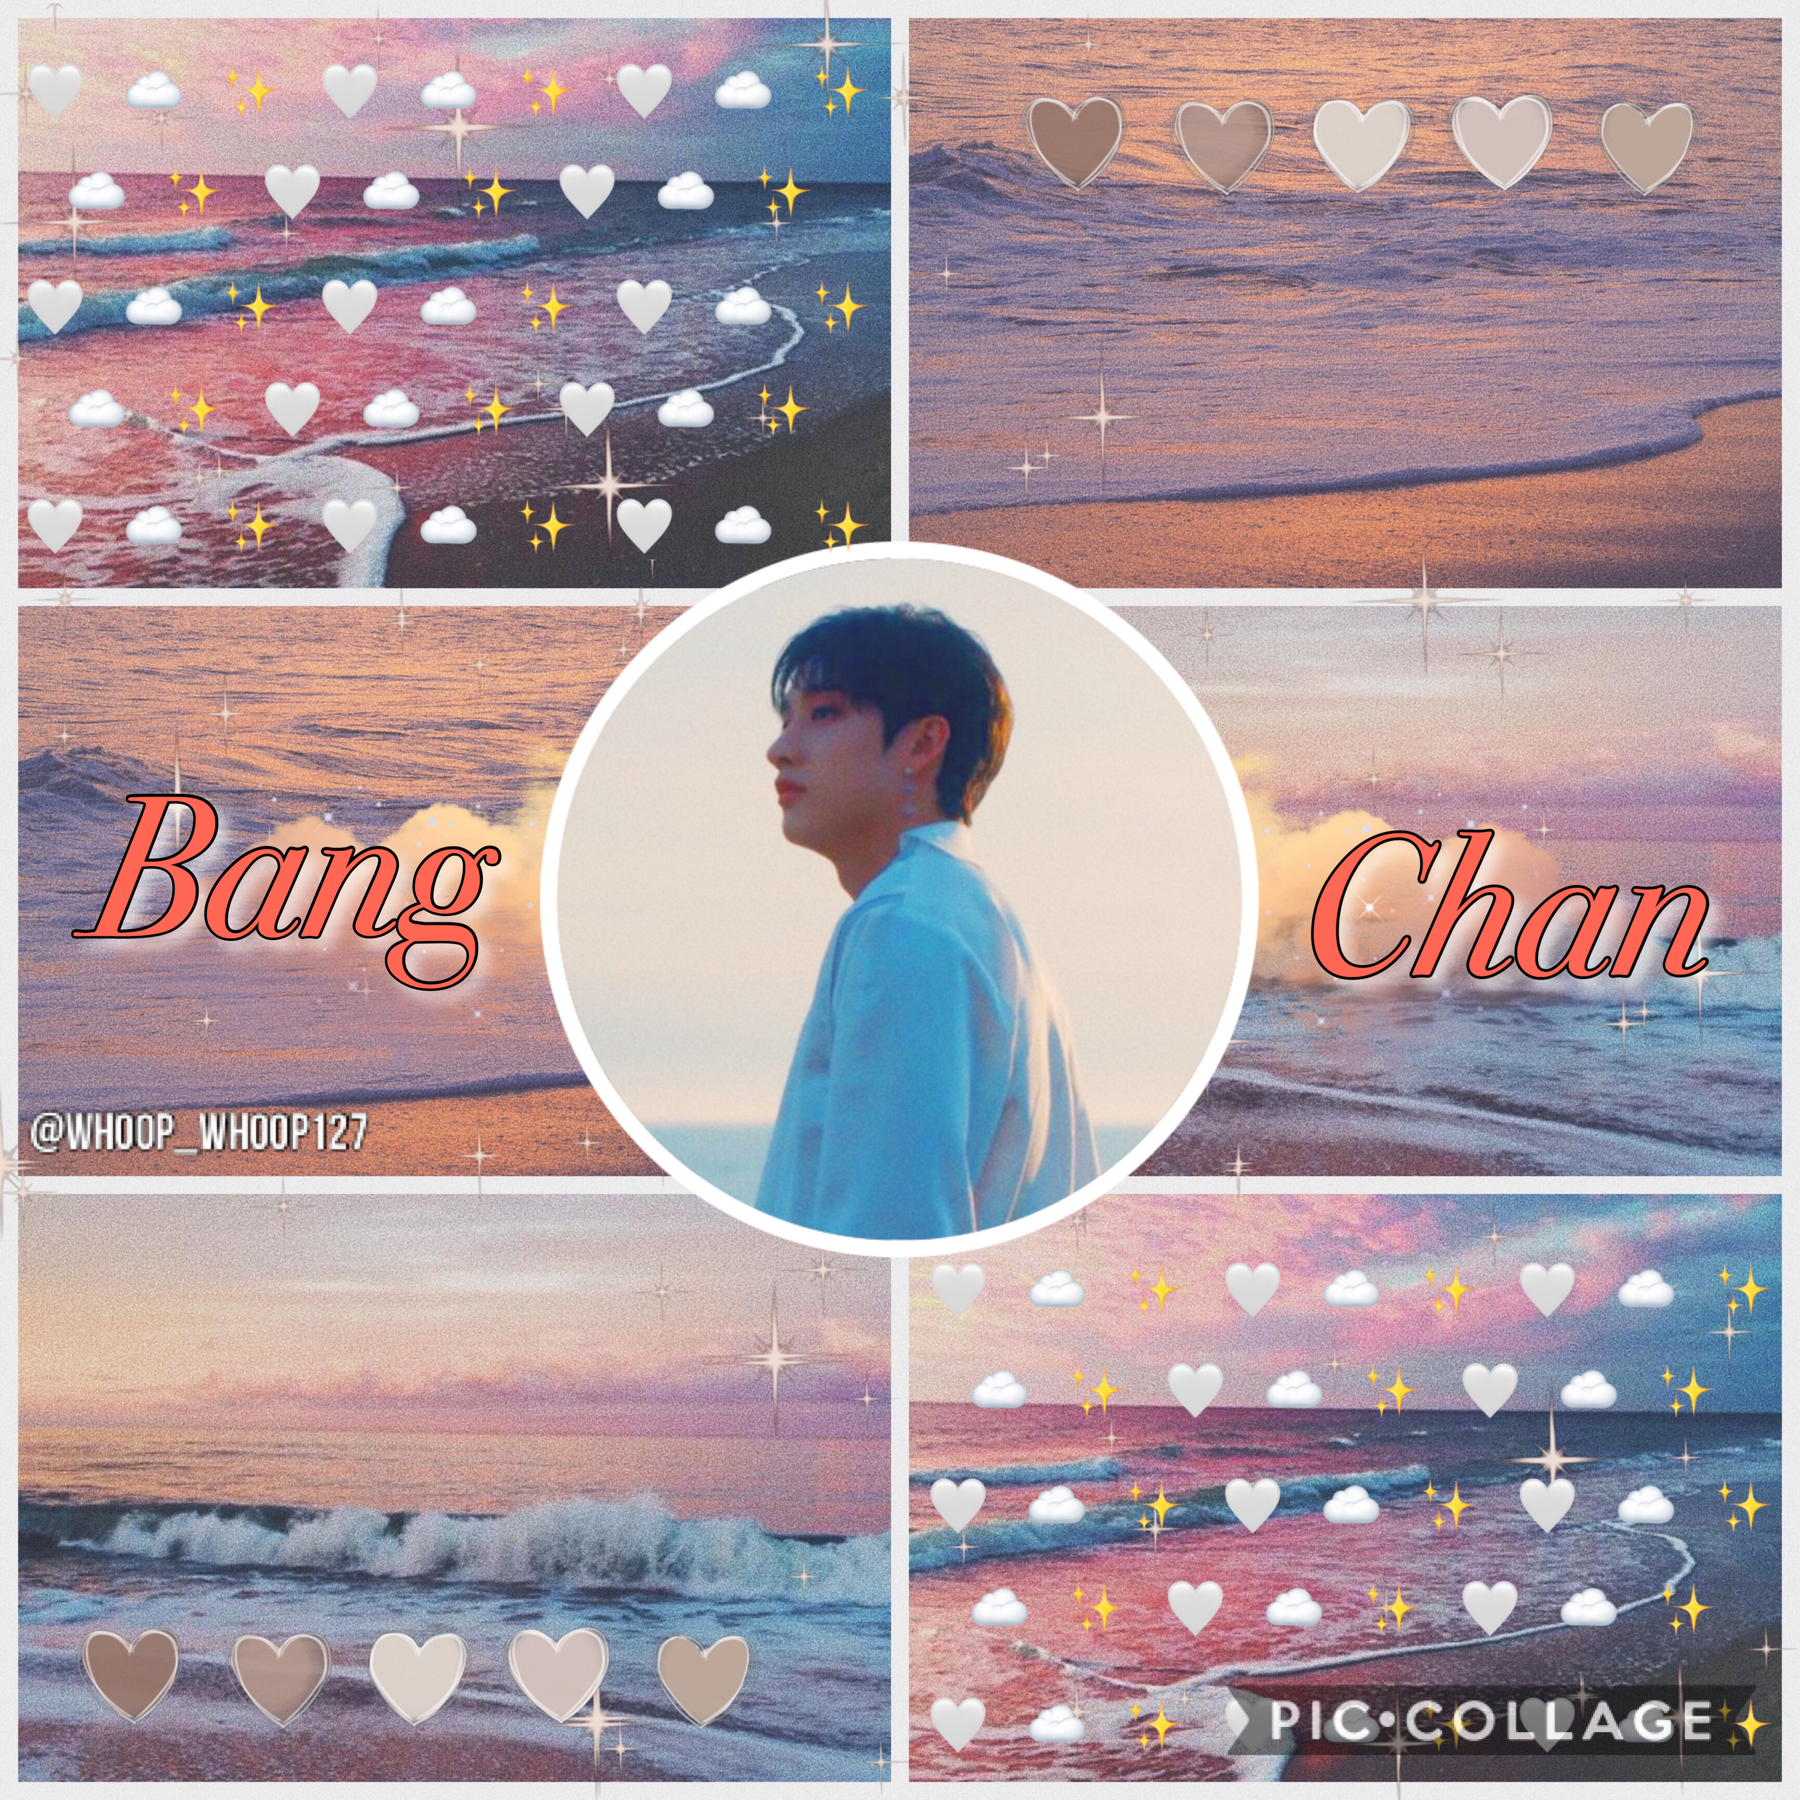 •🚒• 🌻Chan~Stray Kids🌻 Ahh it's been so long since I've posted lmaoo I have like 3 aesthetics in my camera roll rn that need to be edited😭 Anyways ily all haha *mwah*